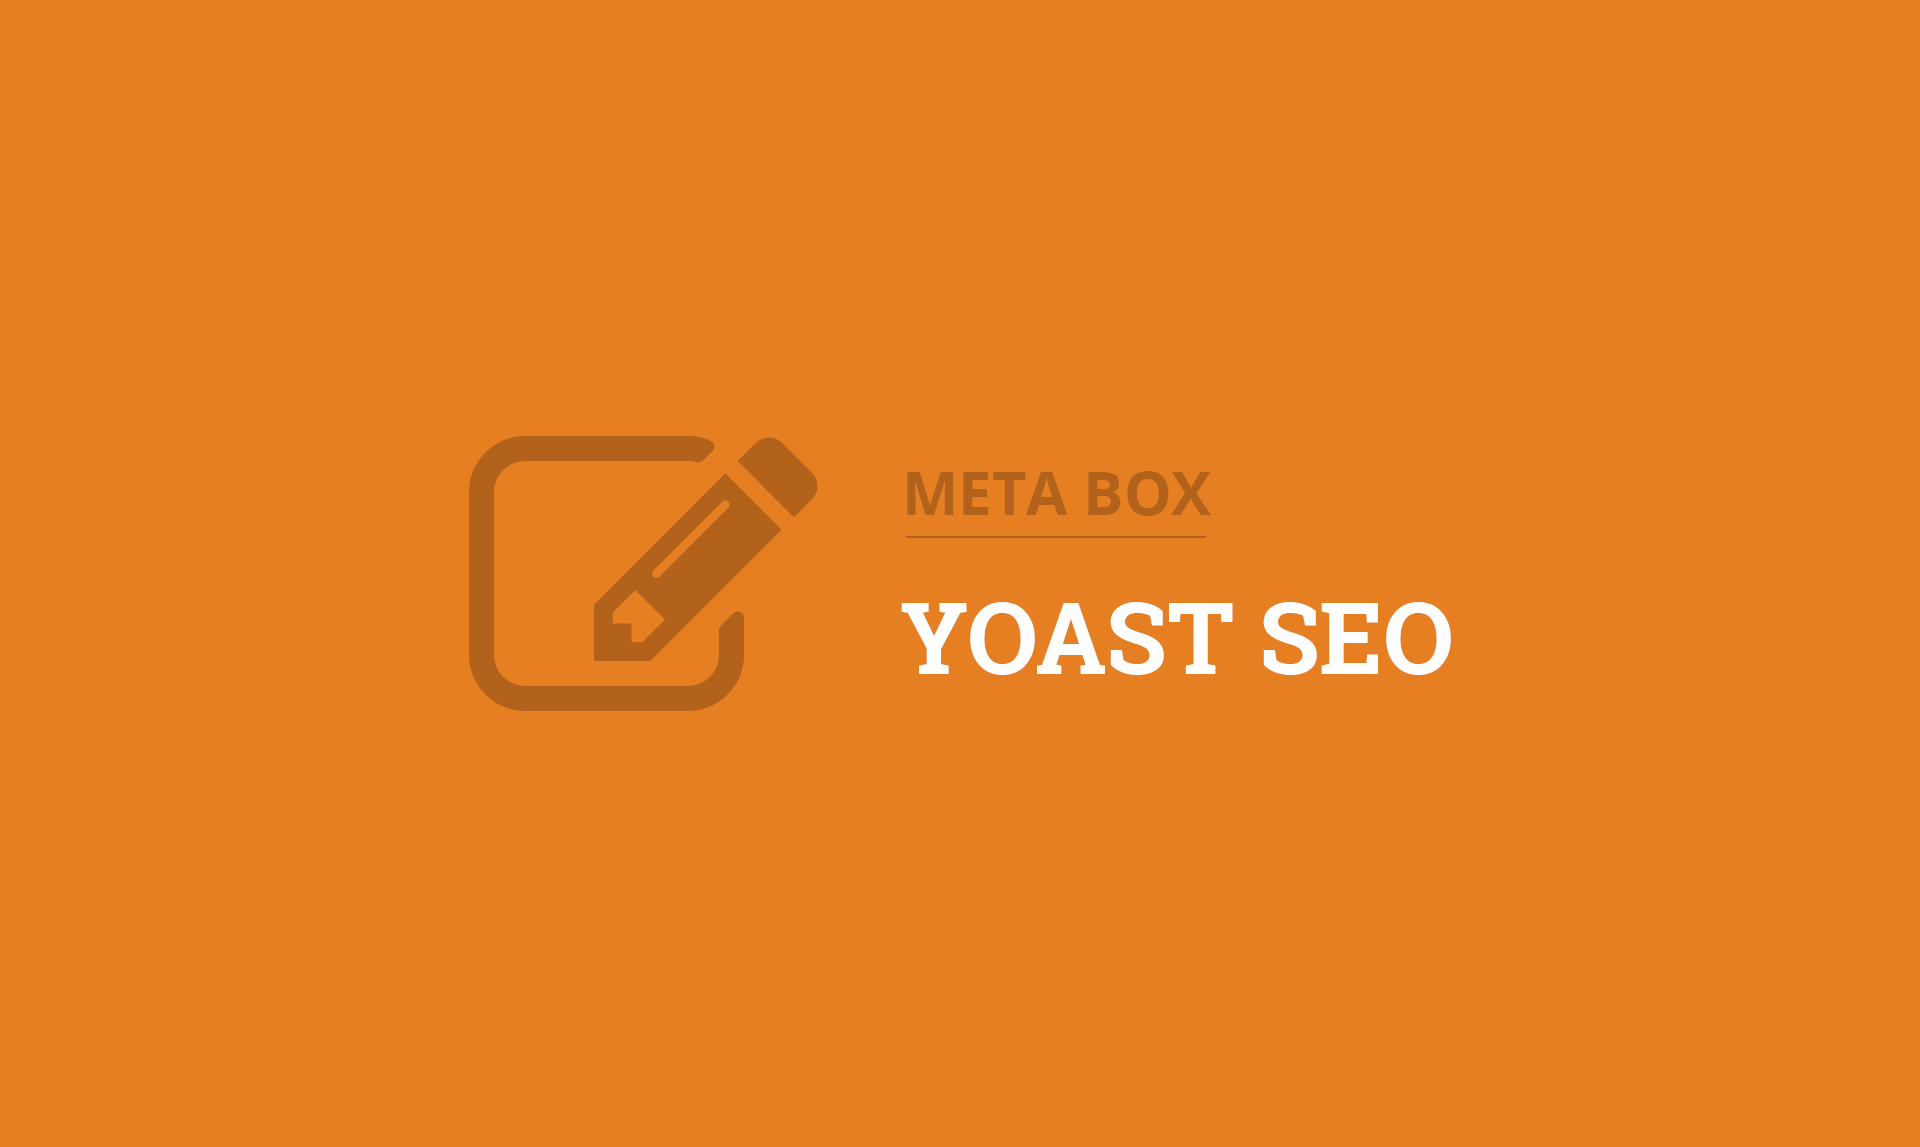 Meta Box for Yoast SEO